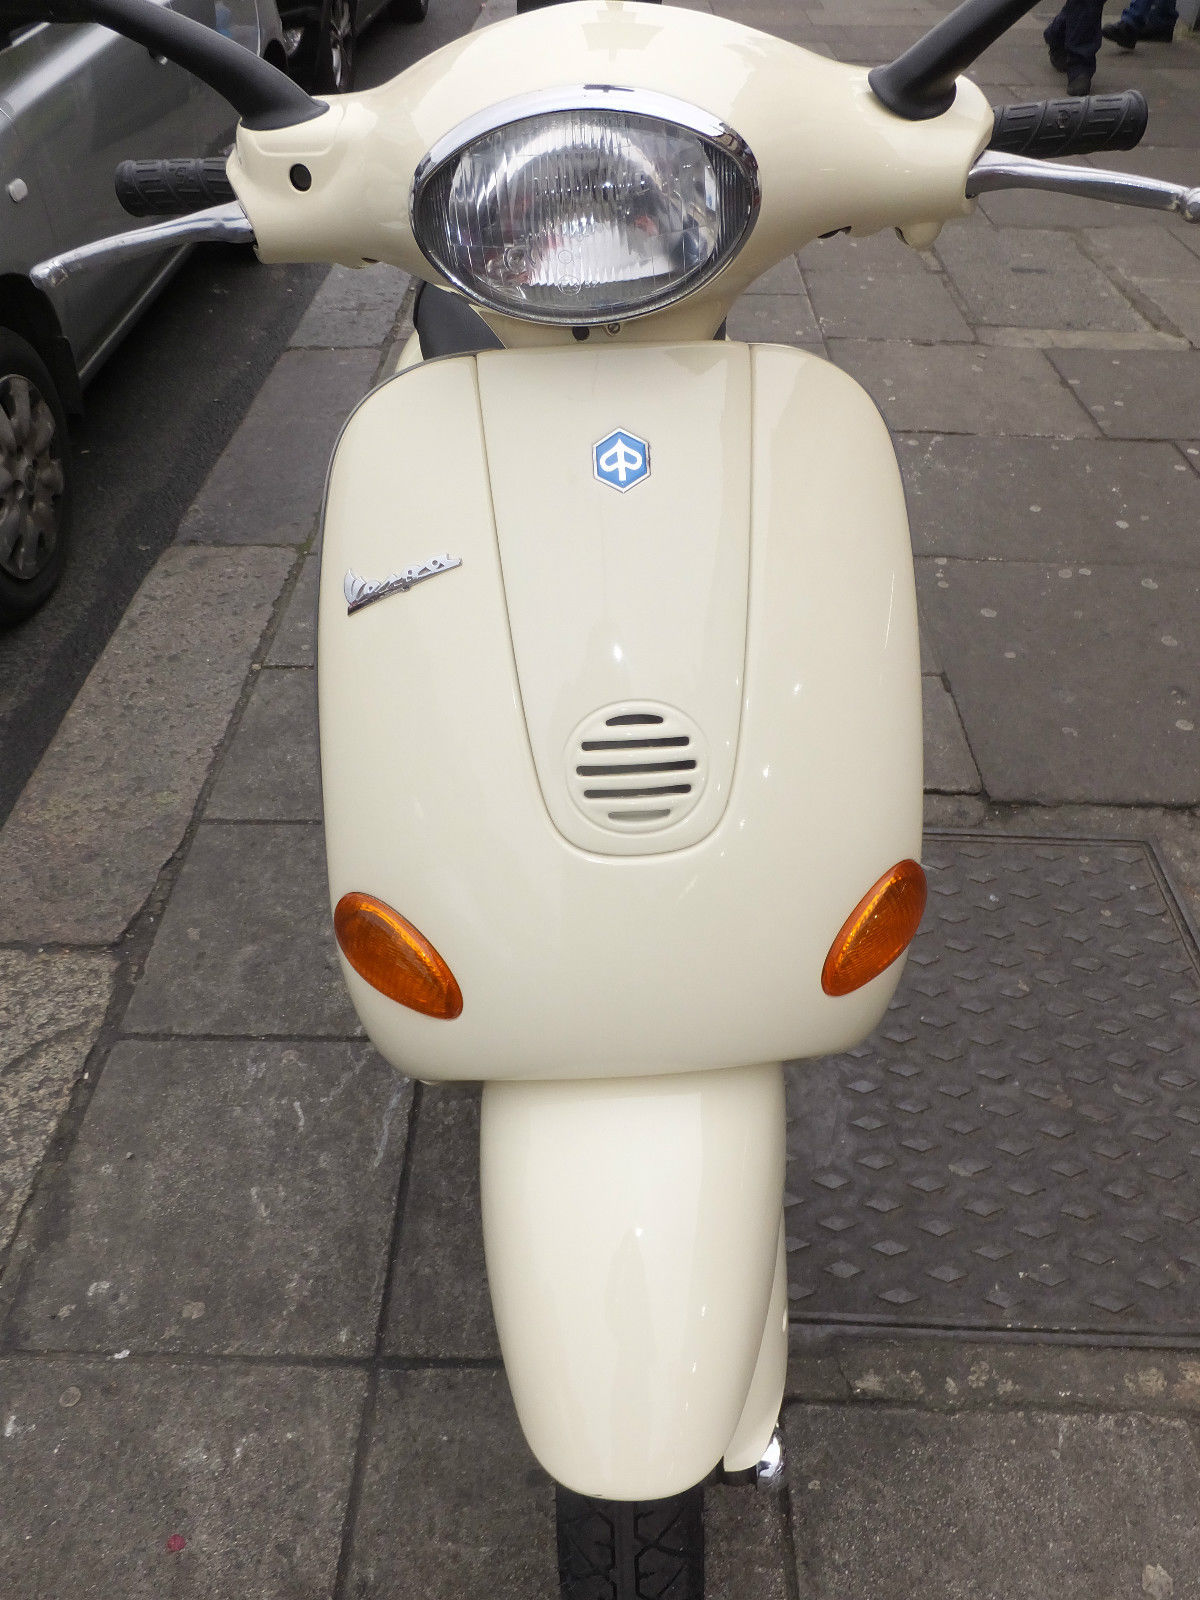 Where To Buy A Vespa Scooter Near Me